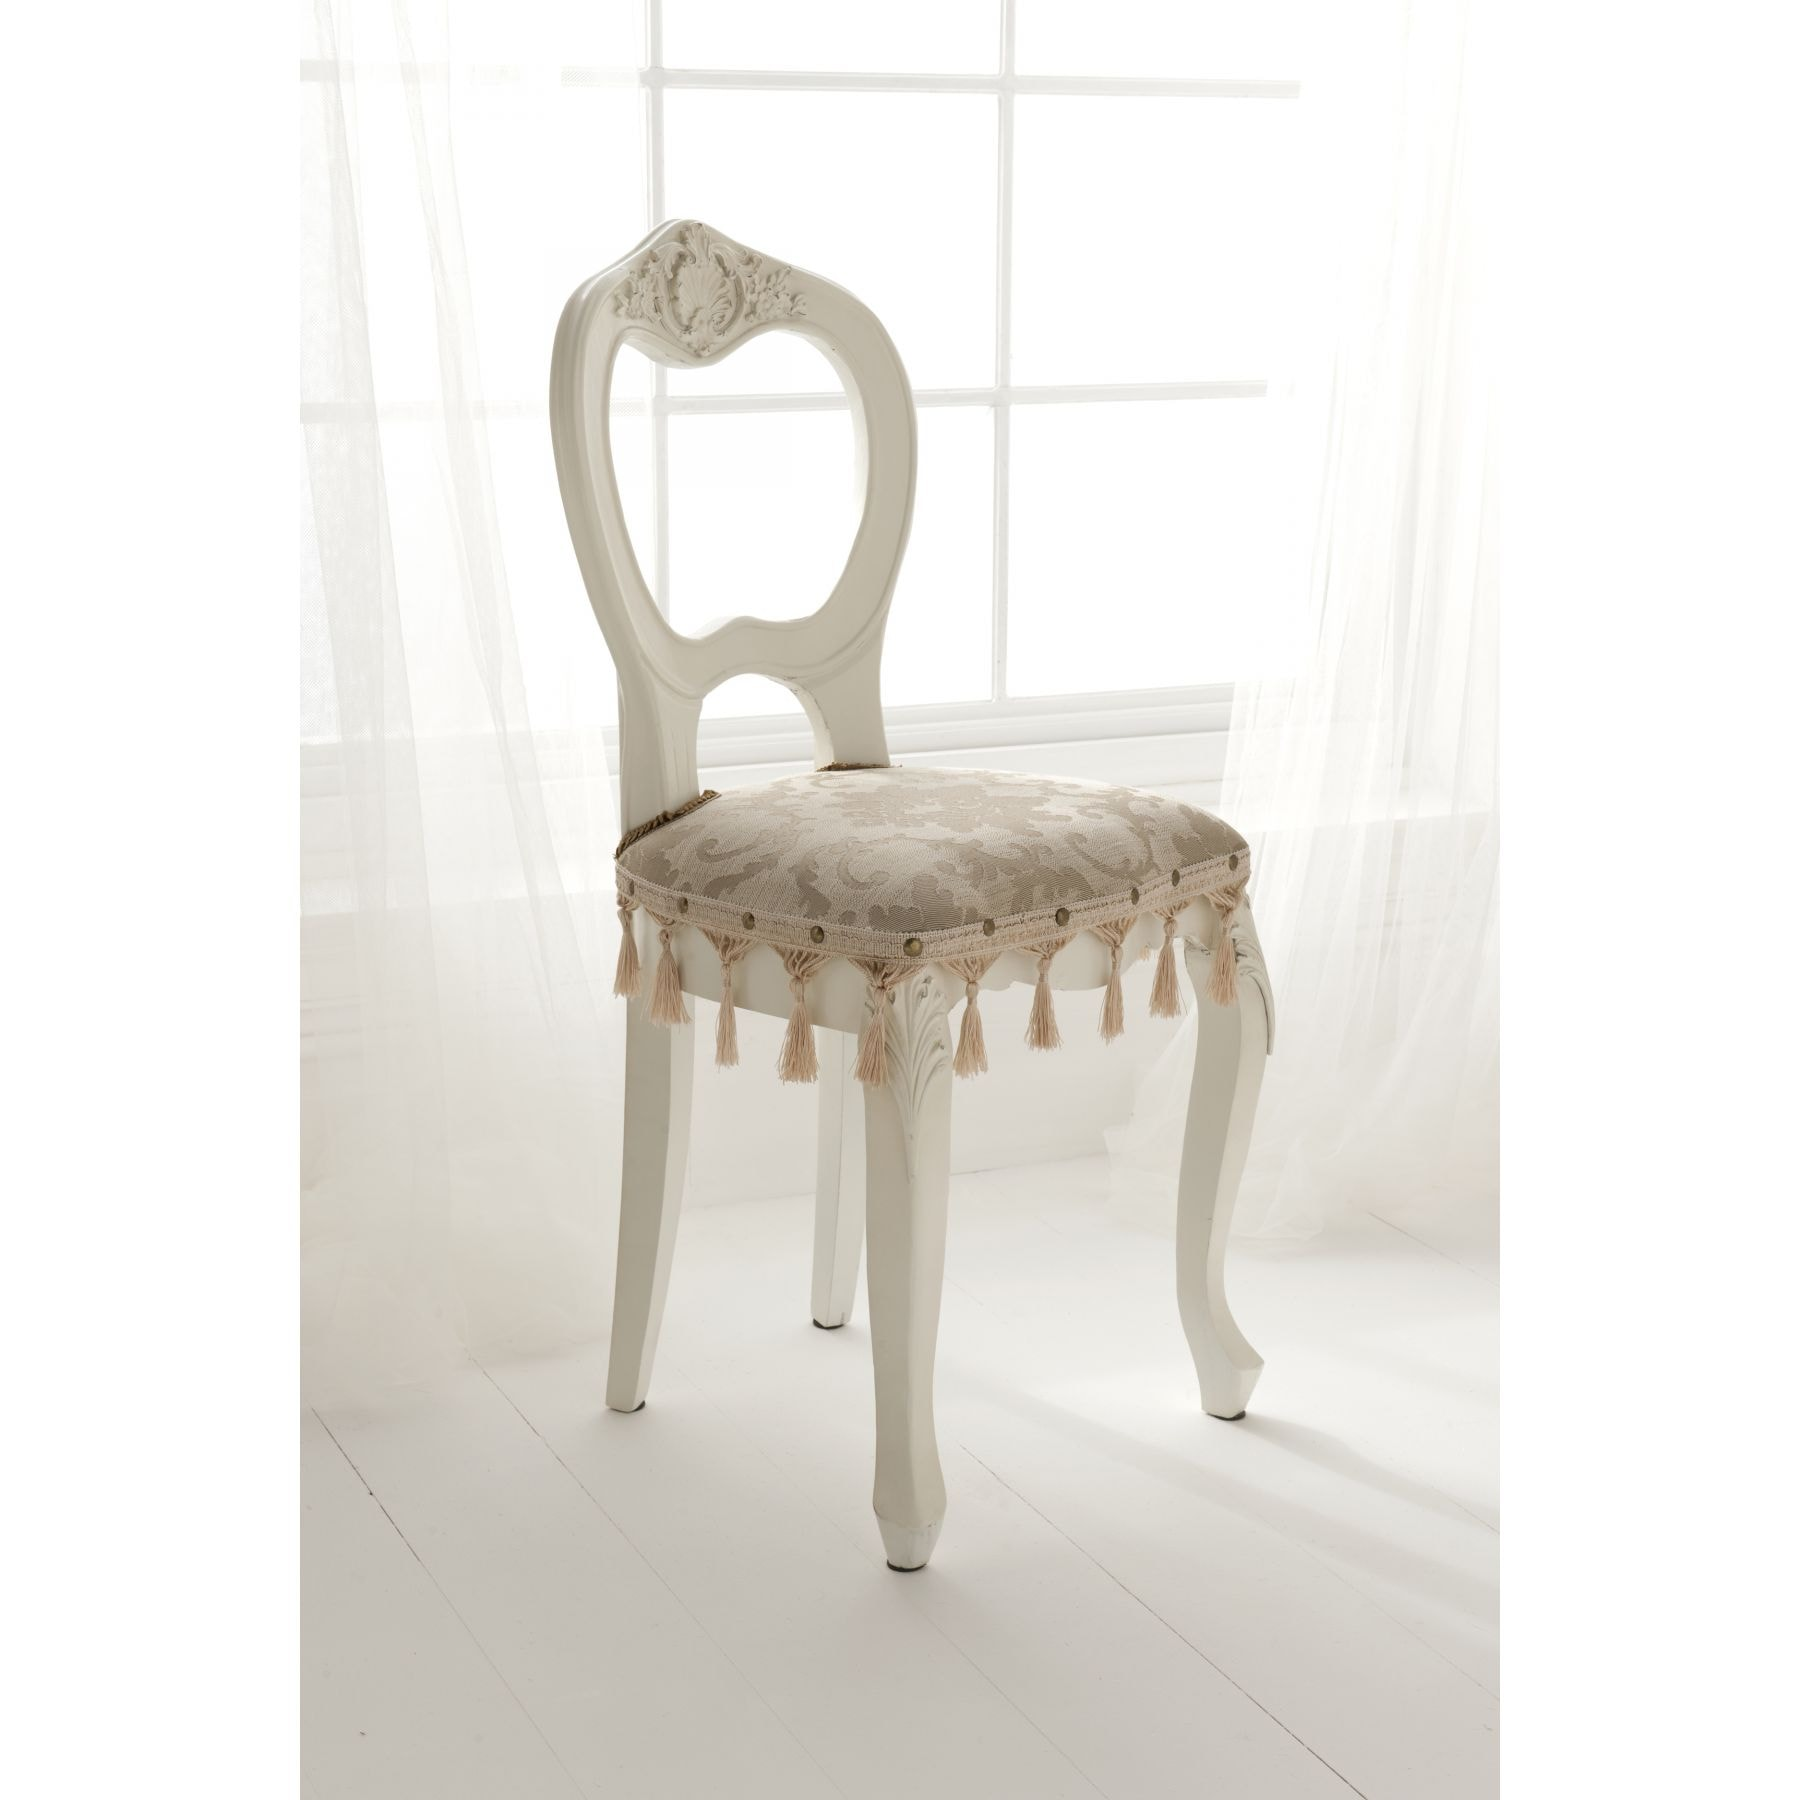 Antique french chair - Antique French Chair